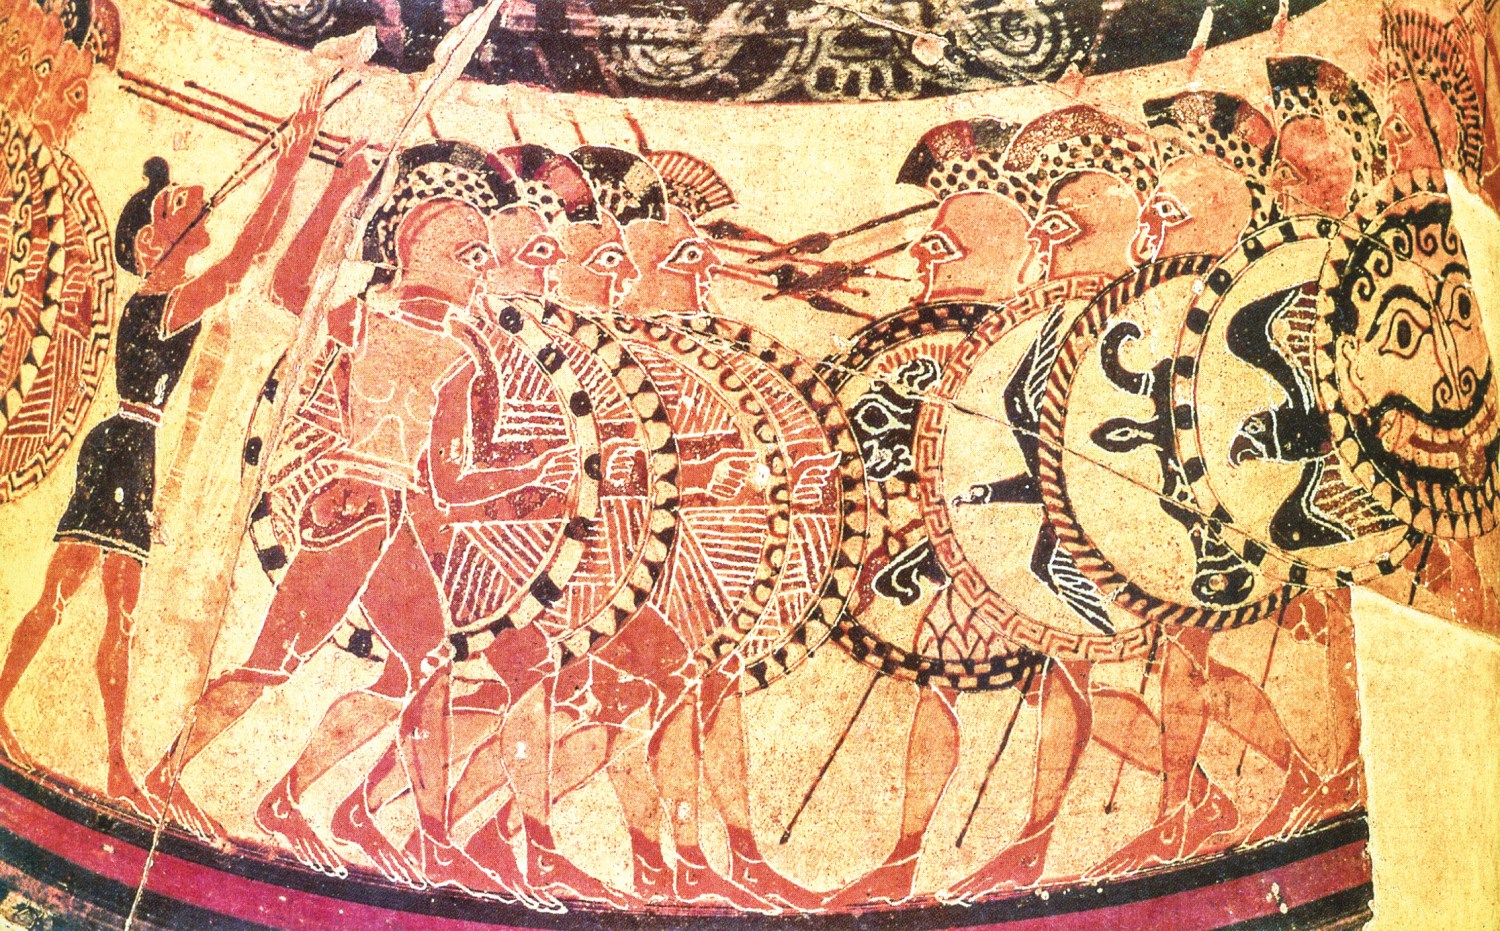 Two ways of war, the Western and the Eastern. The famous Chigi vase depicts a collision of two Greek hoplite phalanxes [ABOVE]. Glazed-tile reliefs from Susa show Persian Immortals, the imperial bodyguard, with bows and spears, and wearing relatively little armour [BELOW]. Shock action was at the centre of one military system, mobility and shooting at the centre of the other.